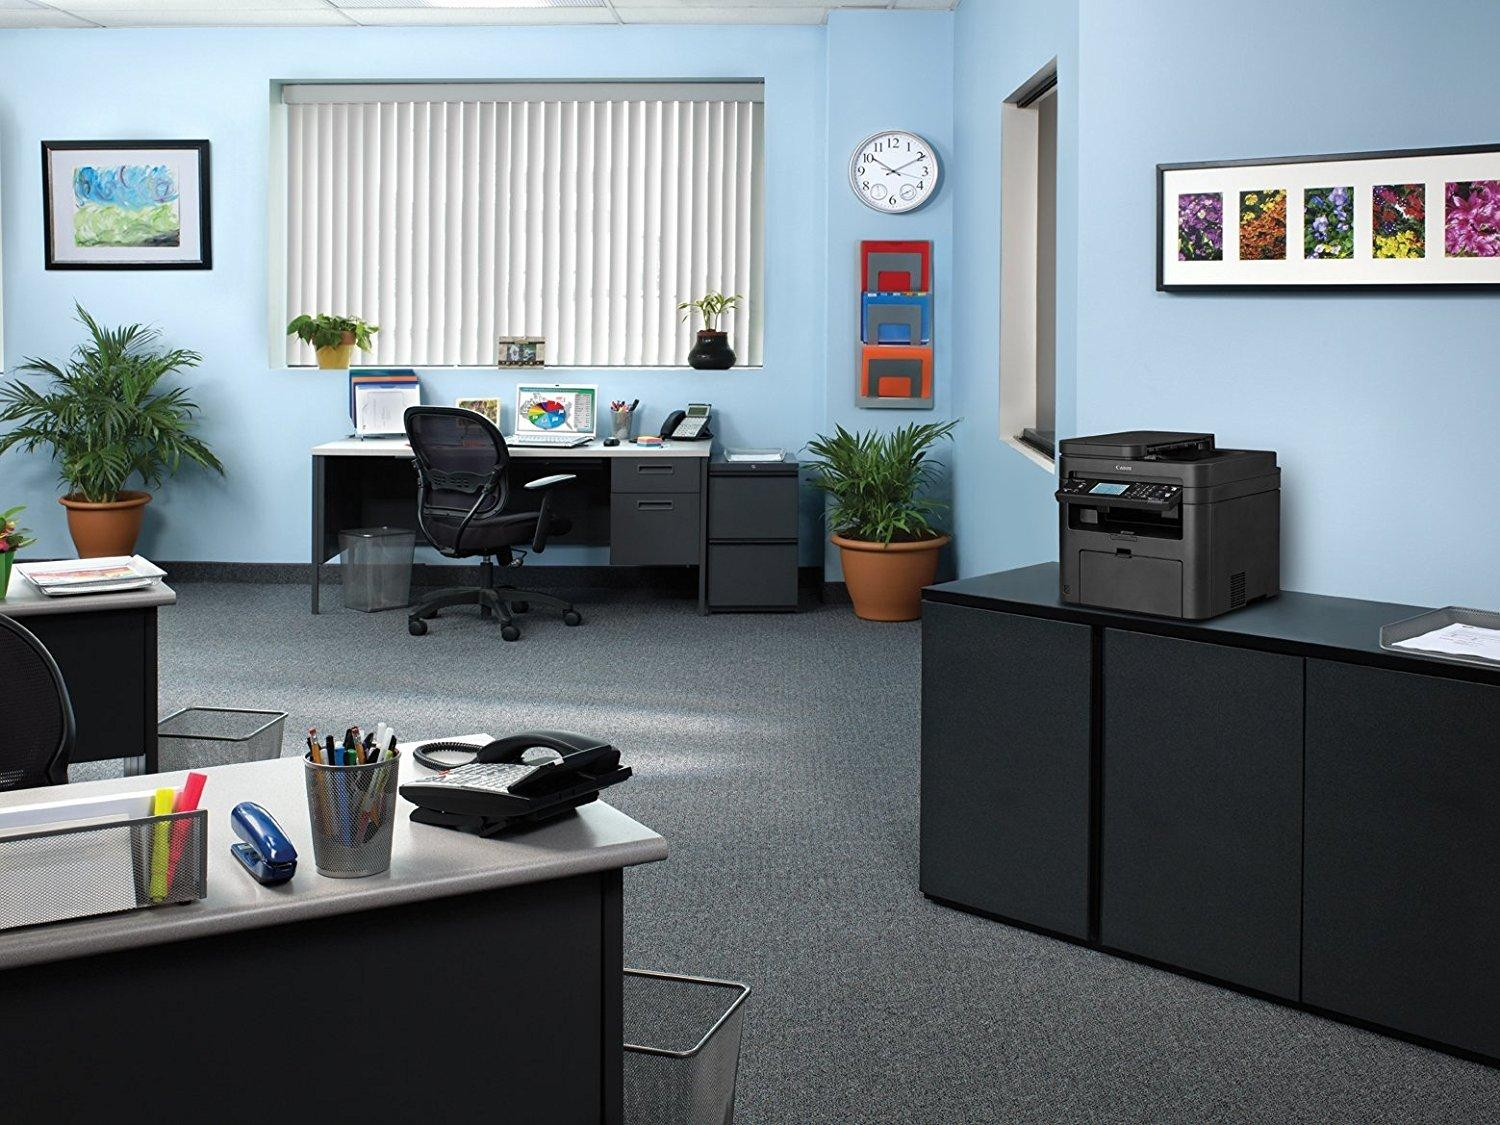 Furniture: Awesome Costco Office Furniture With Desk And Cabinets Intended For Costco Wall Art (Image 8 of 20)